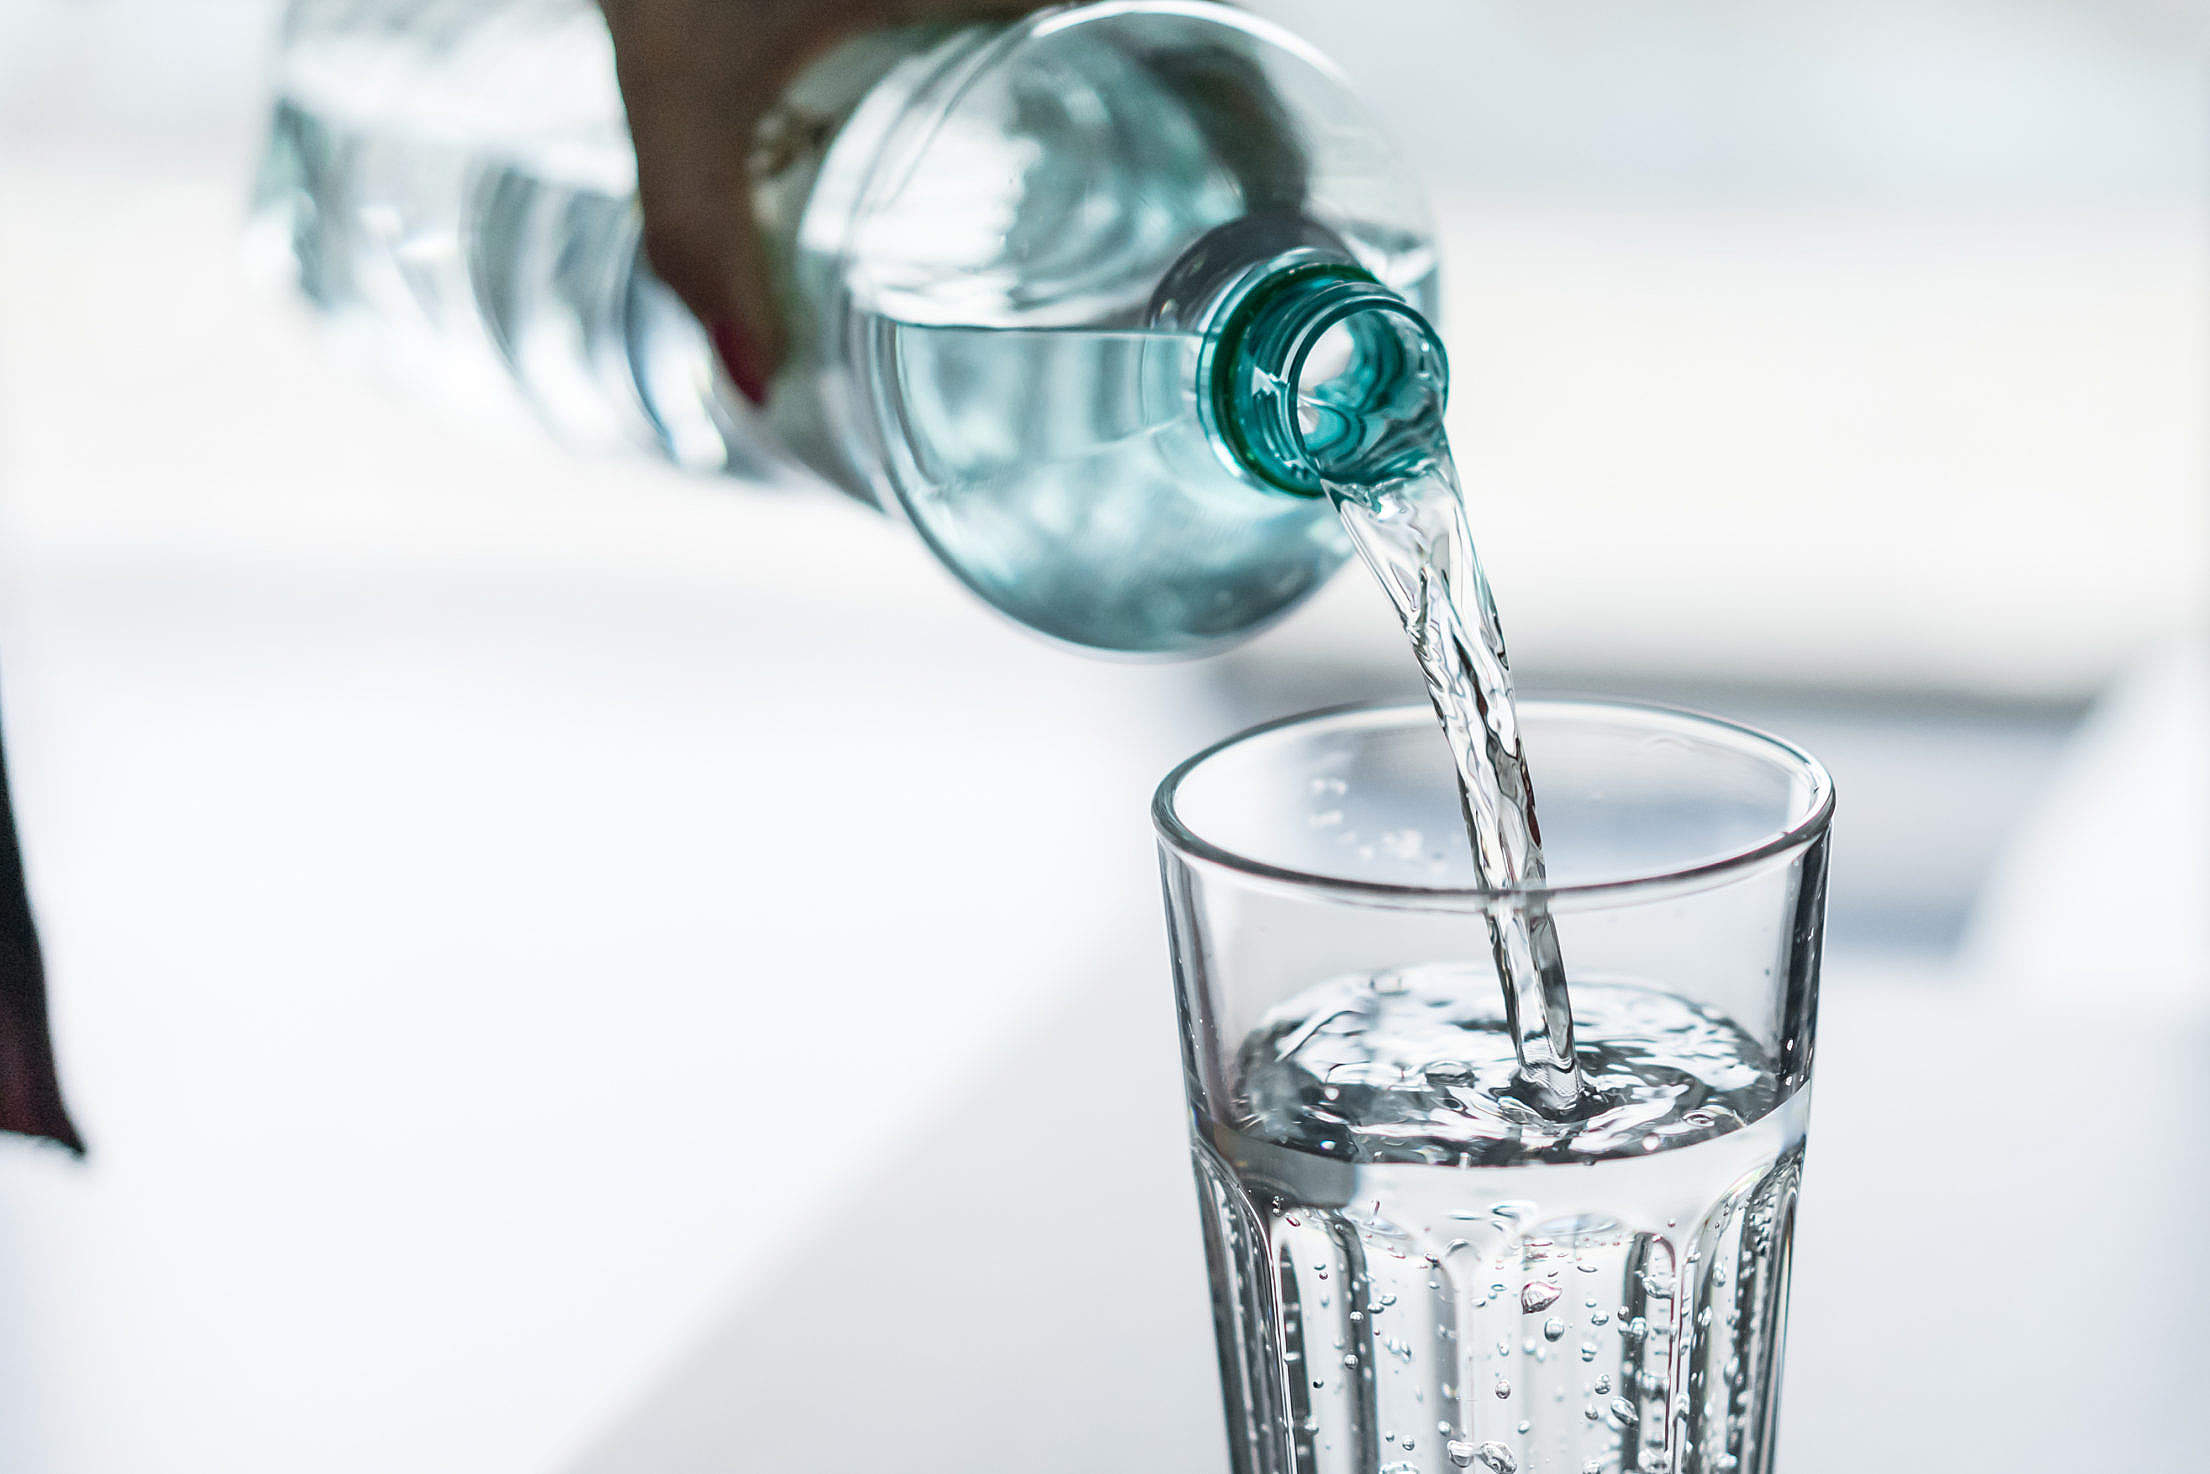 Pouring Water from PET Bottle into a Glass Free Stock Photo